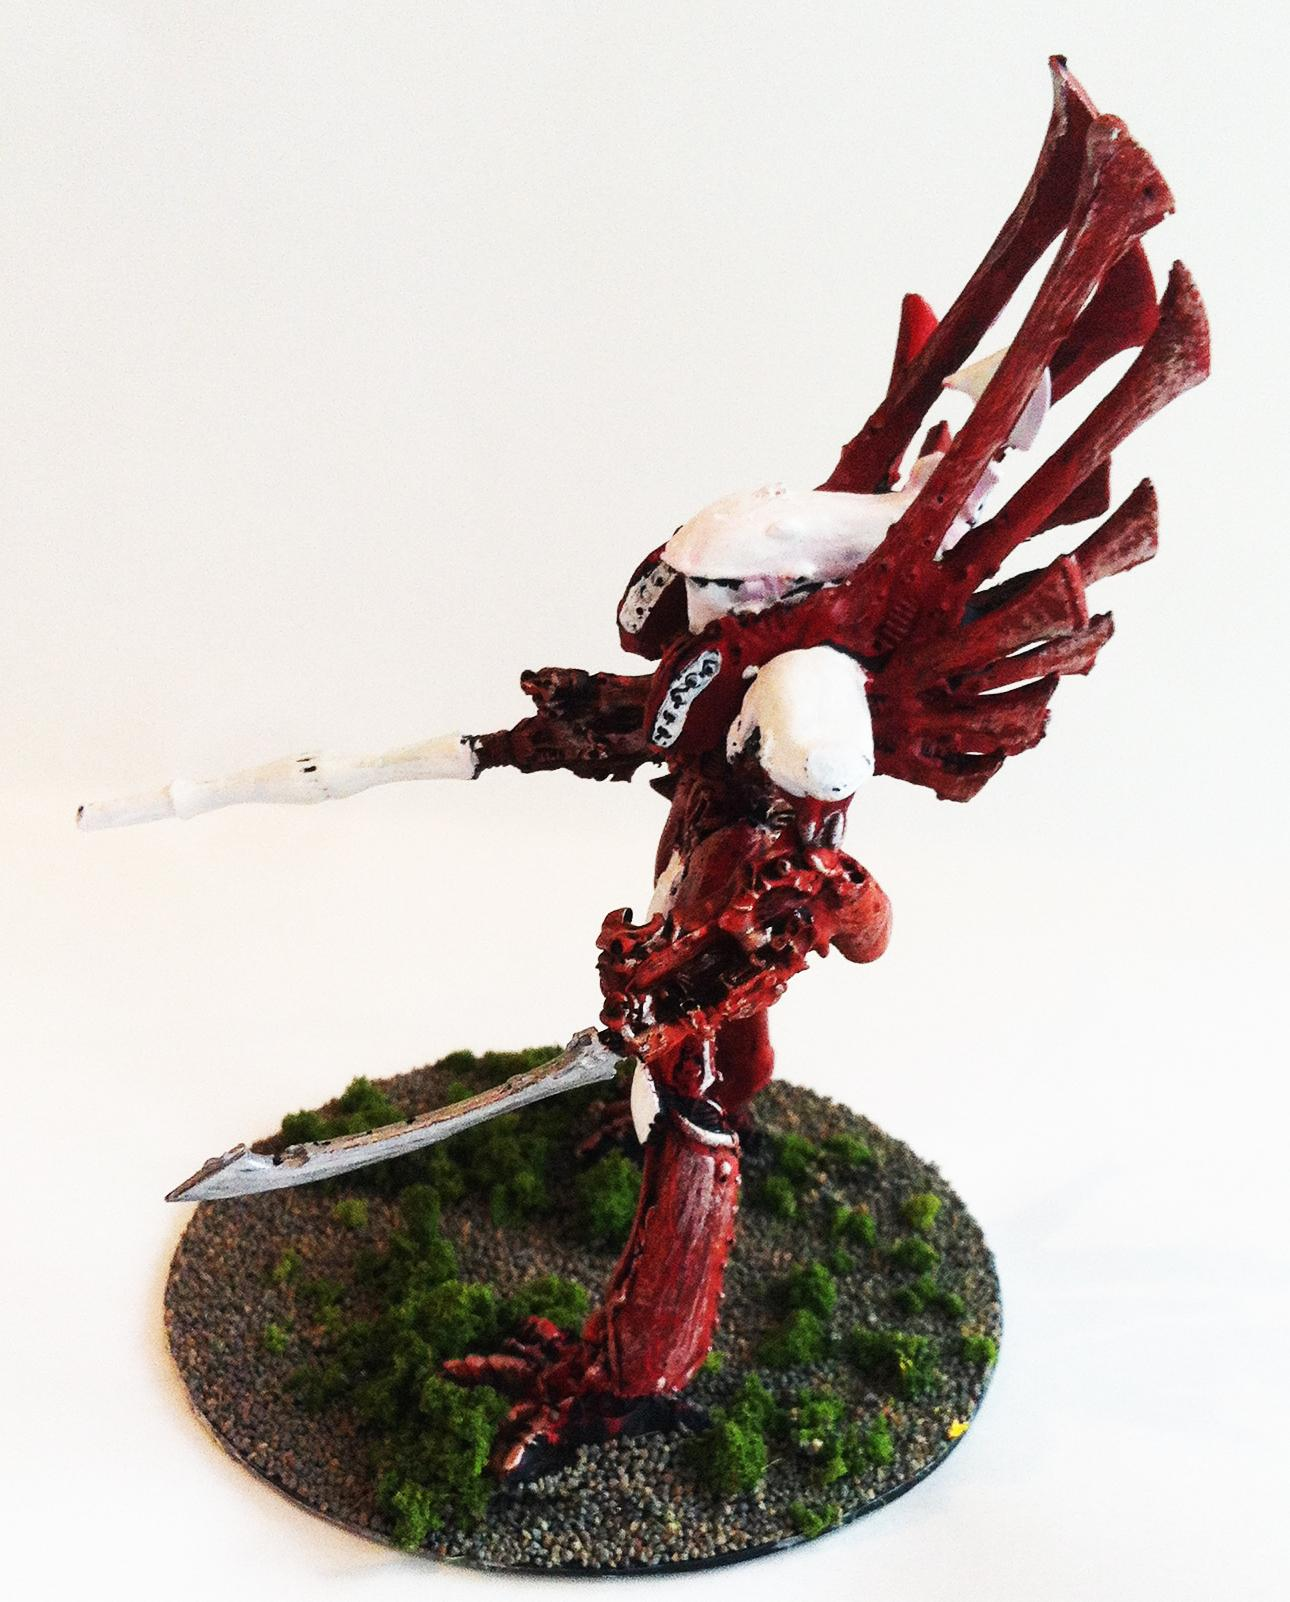 Eldar, Epic, For Sale, Forge World, Scratch Build, Titan, Warhammer 40,000